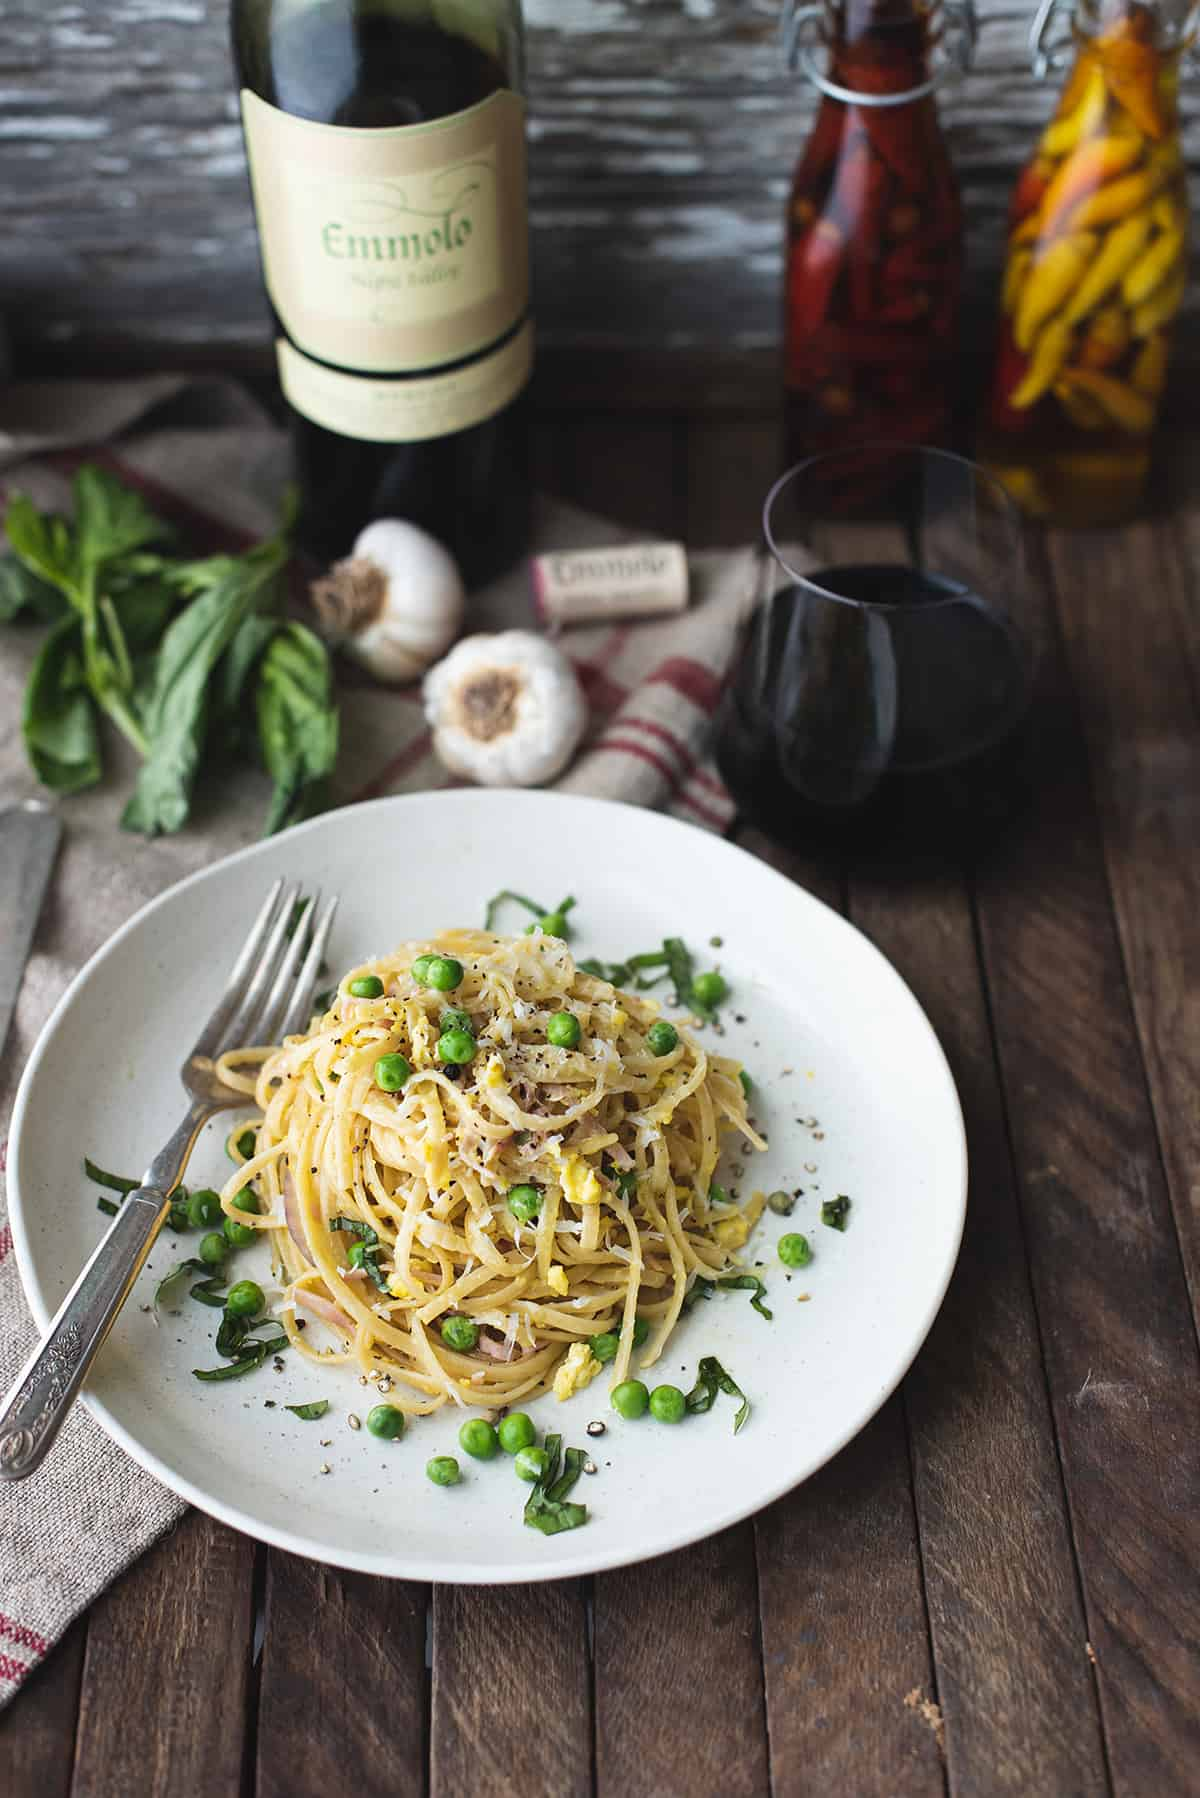 classic pasta carbonara on plate with fork